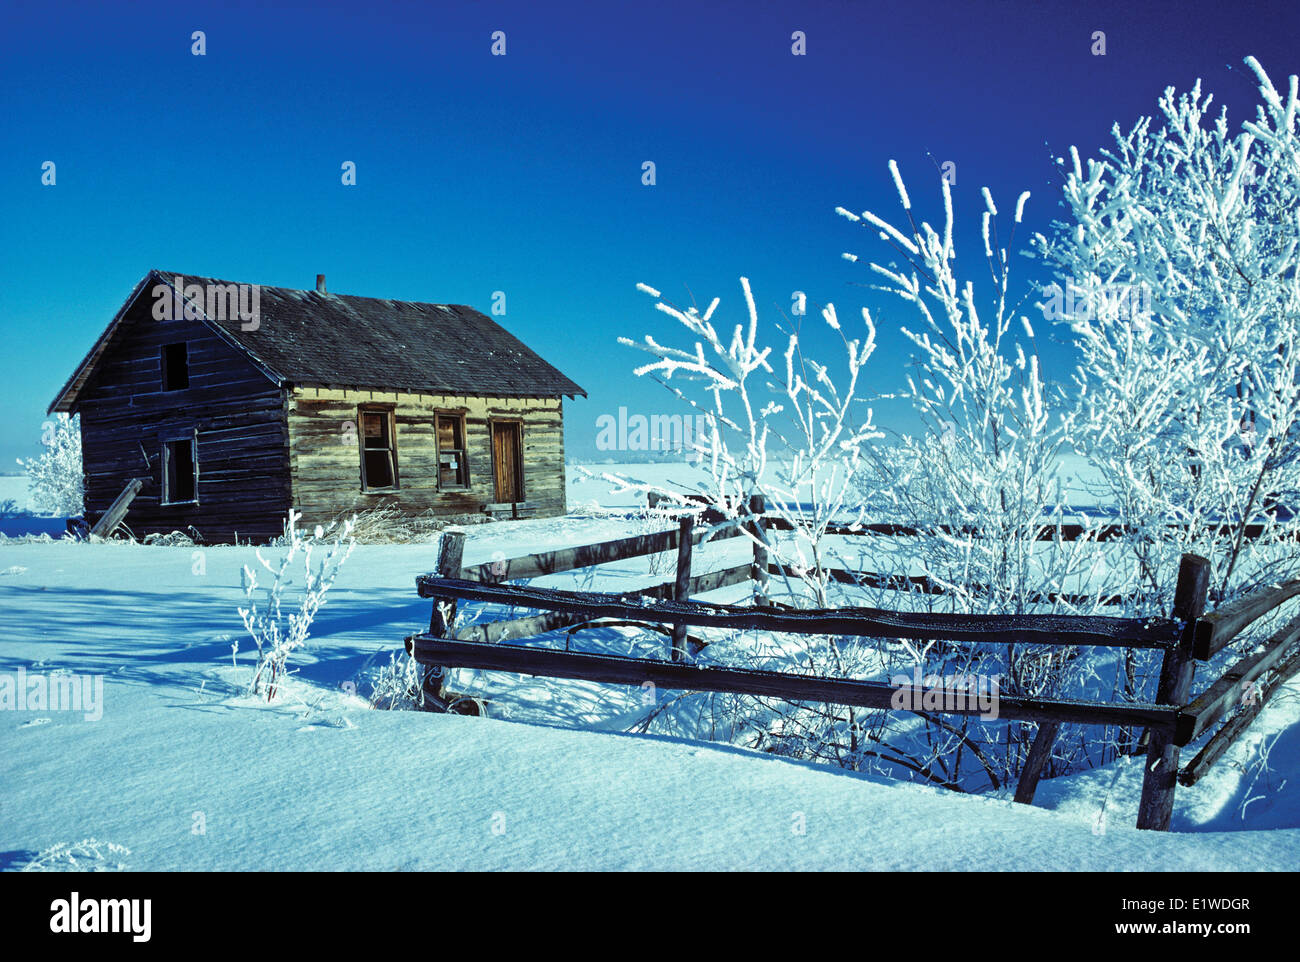 pioneer log home and trees covered with hoarfrost, near Rycroft, Alberta, Canada - Stock Image